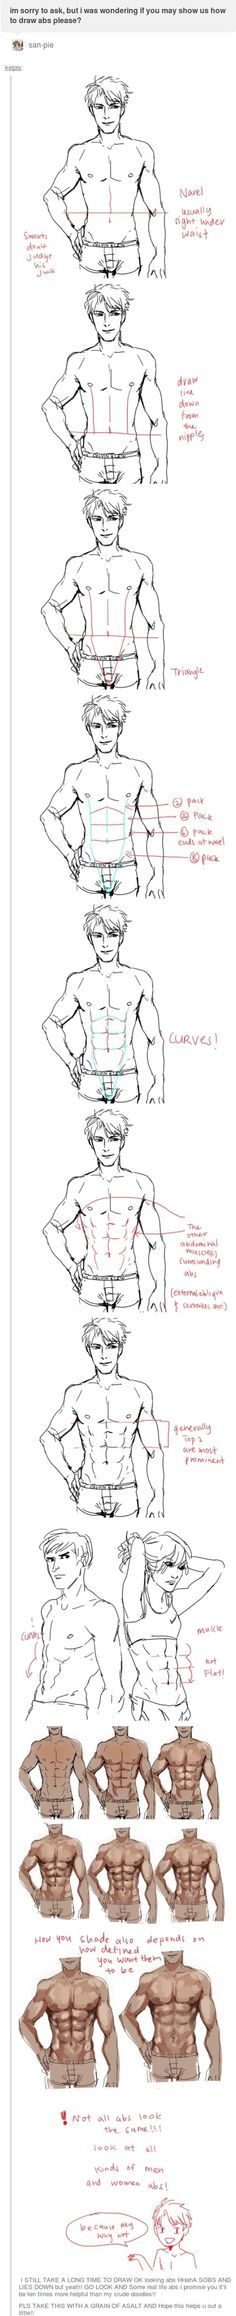 how to draw abs. http://kelpls.tumblr.com/post/72186004376/im-sorry-to-ask-but-i-was-wondering-if-you-may-show-us I have needed this for so looooong